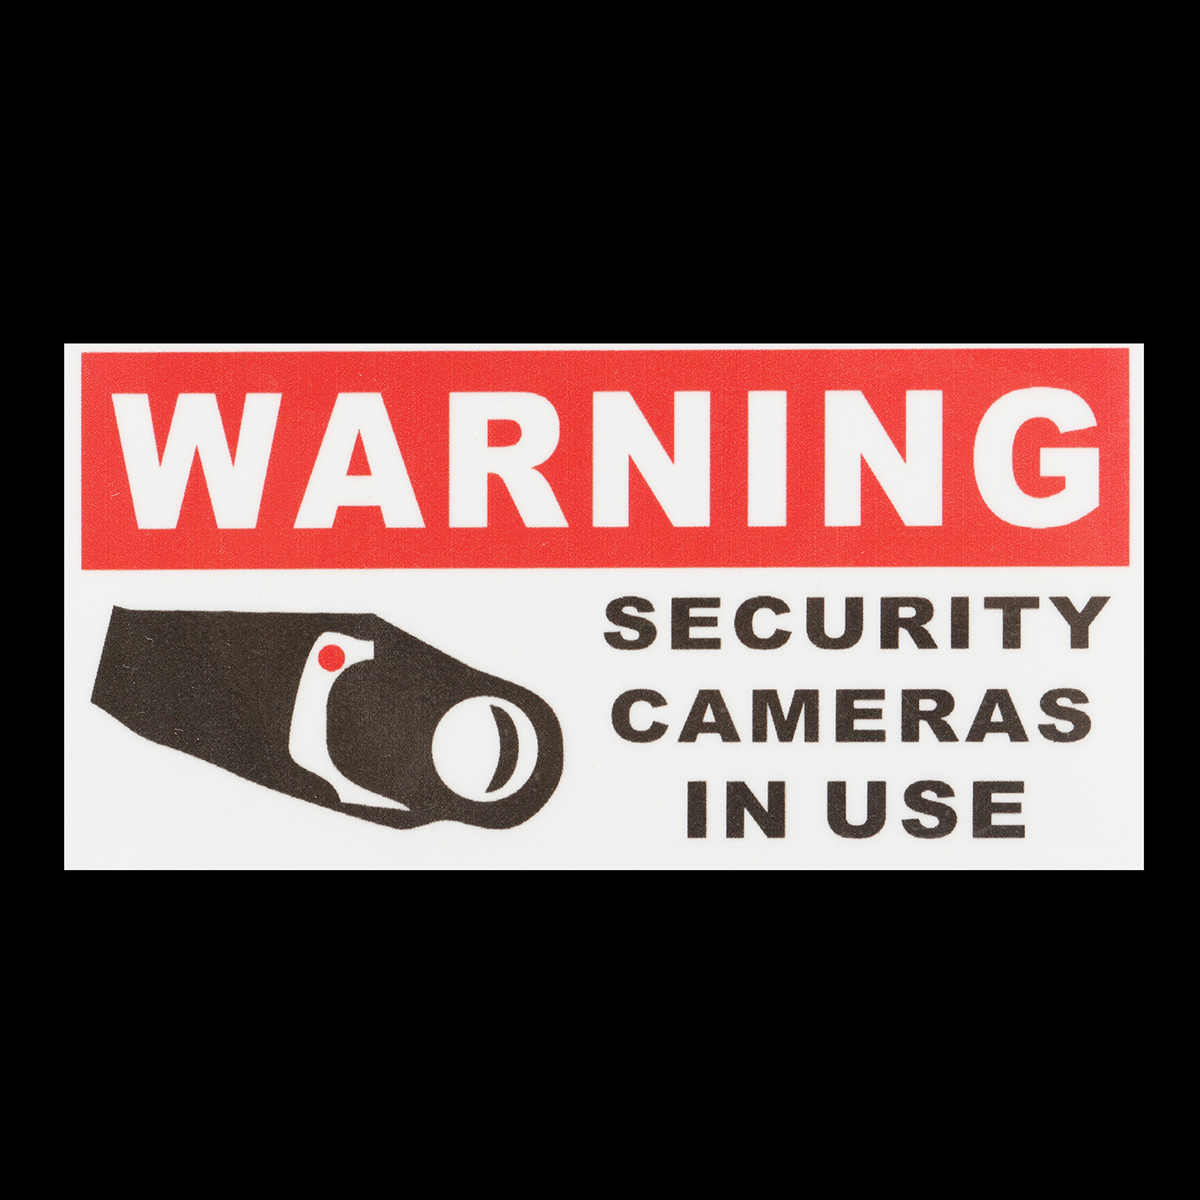 8Pcs Security Camera In Use Self-adhensive Stickers Safety Signs Decal Waterproof